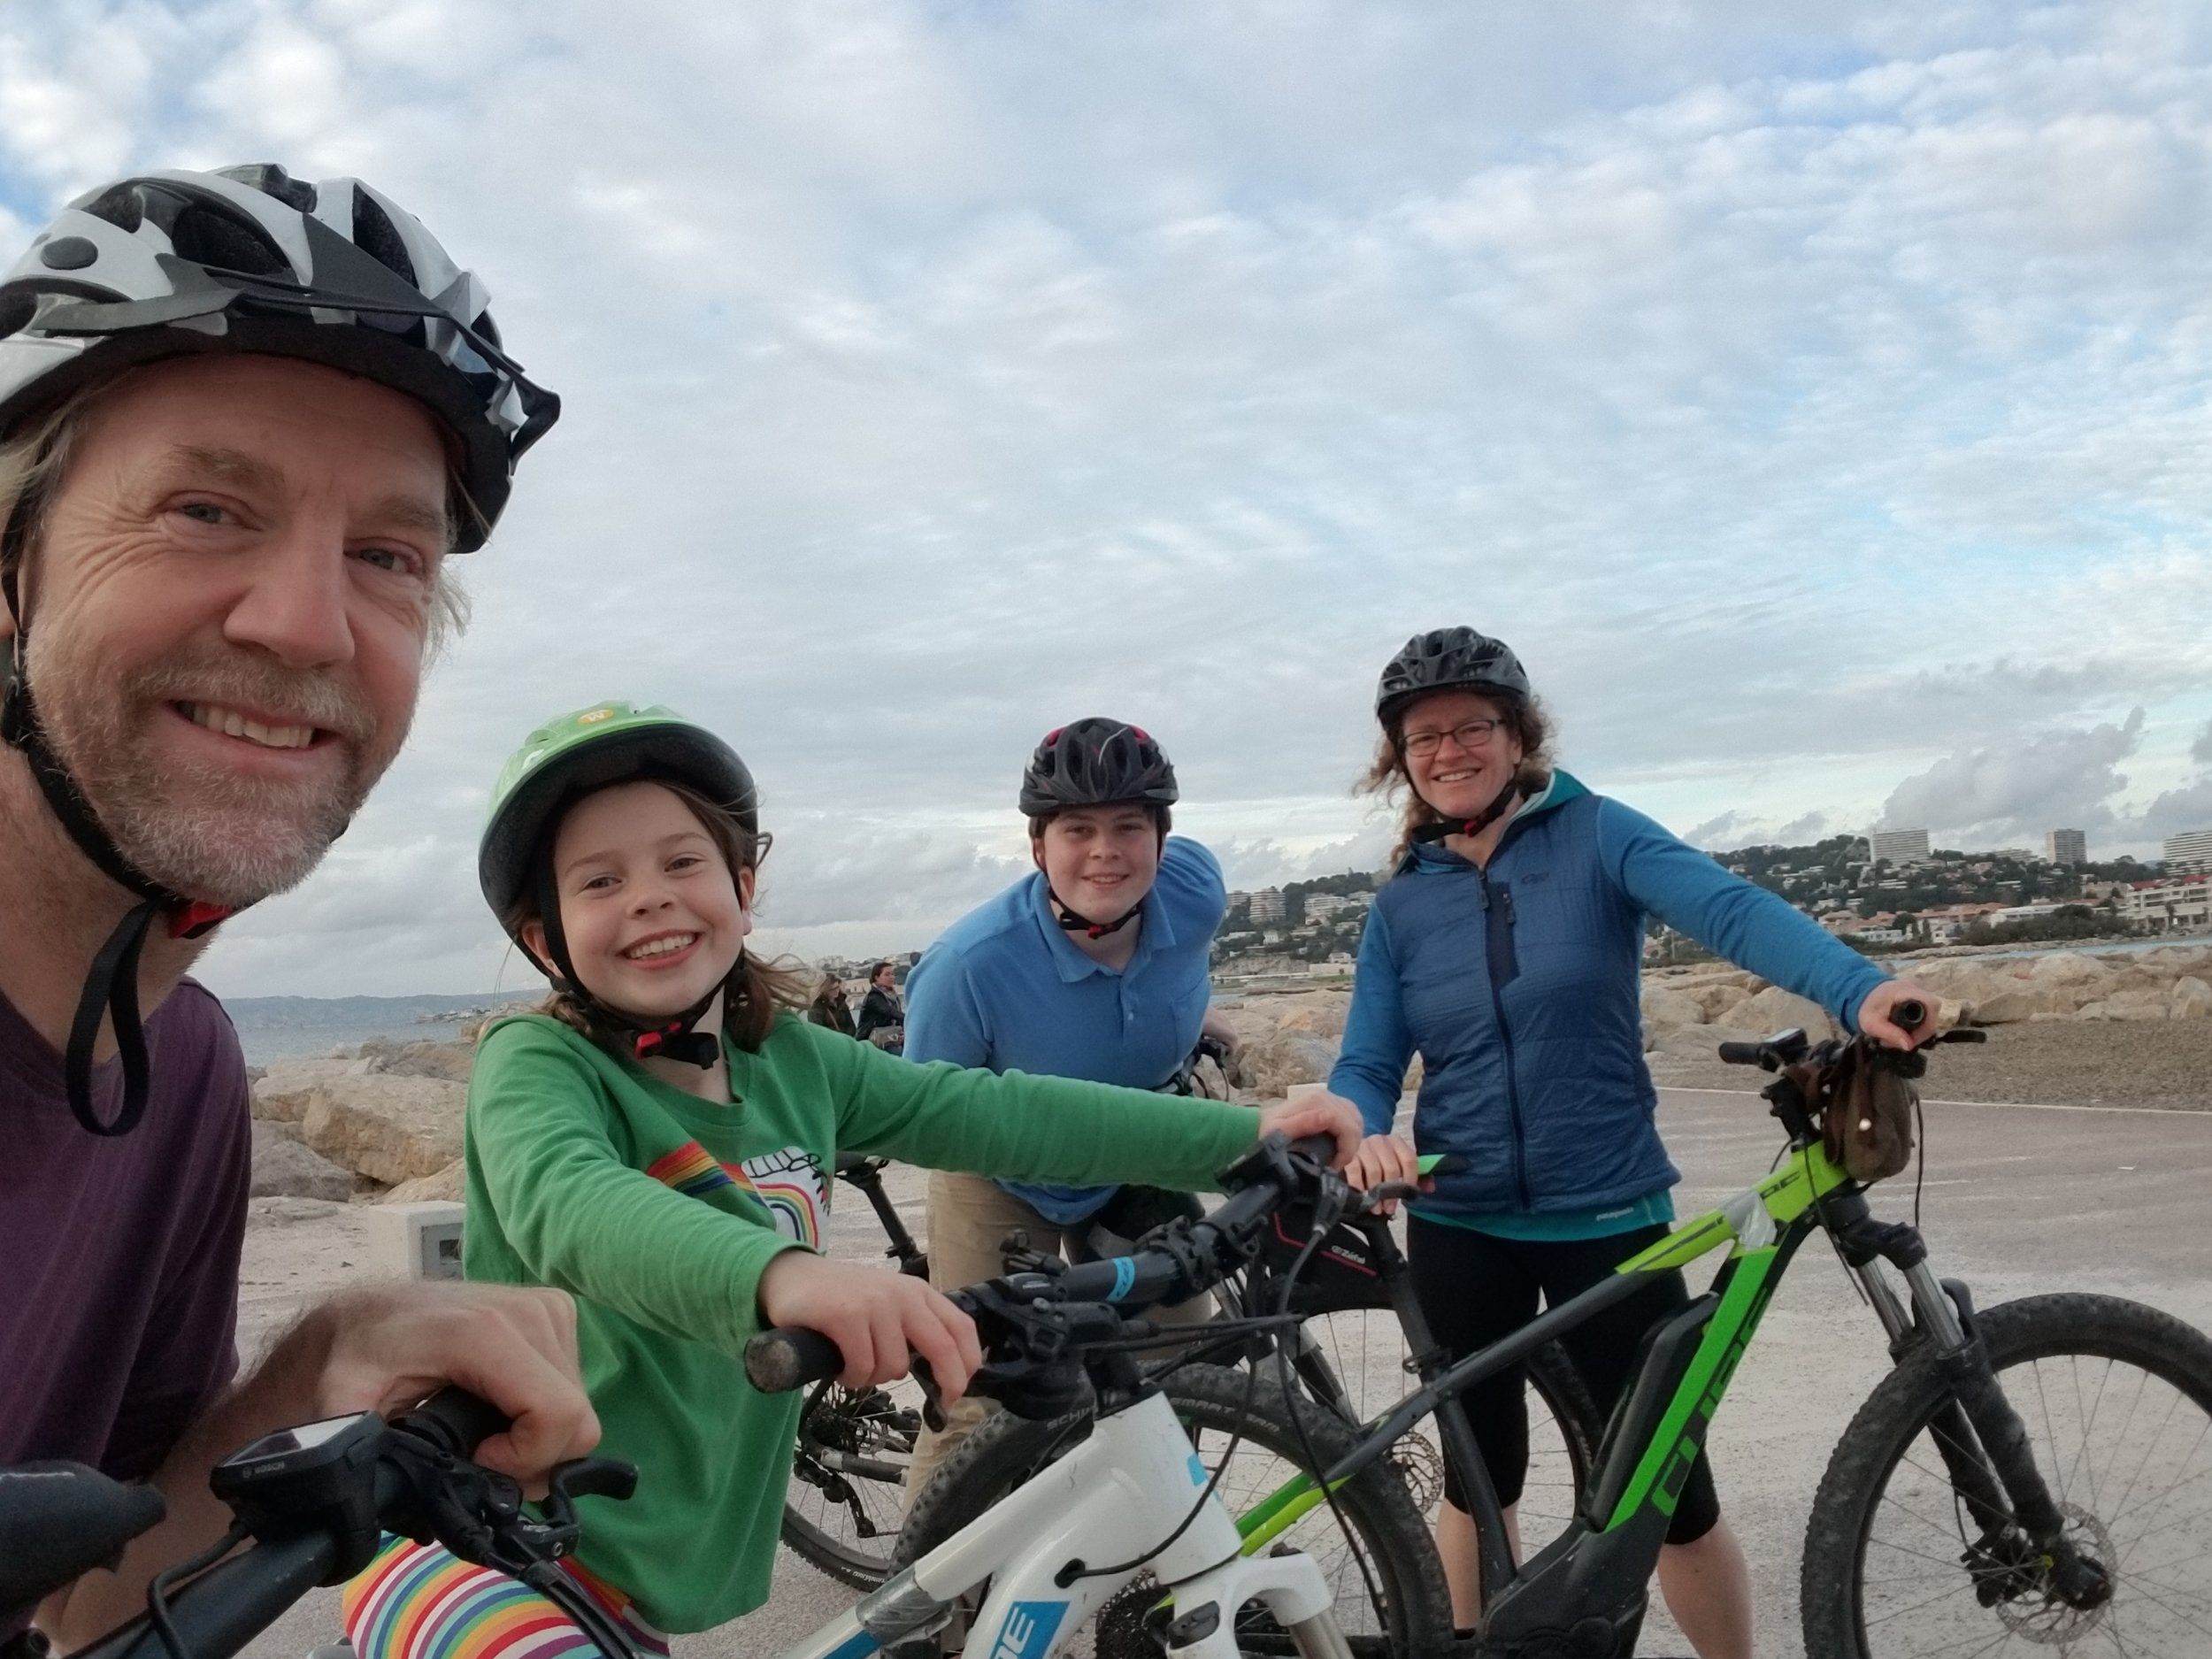 Back to sea level. (And almost back to the bike shop). Everyone still smiling except me. (they stuck me in a pannier - really?)